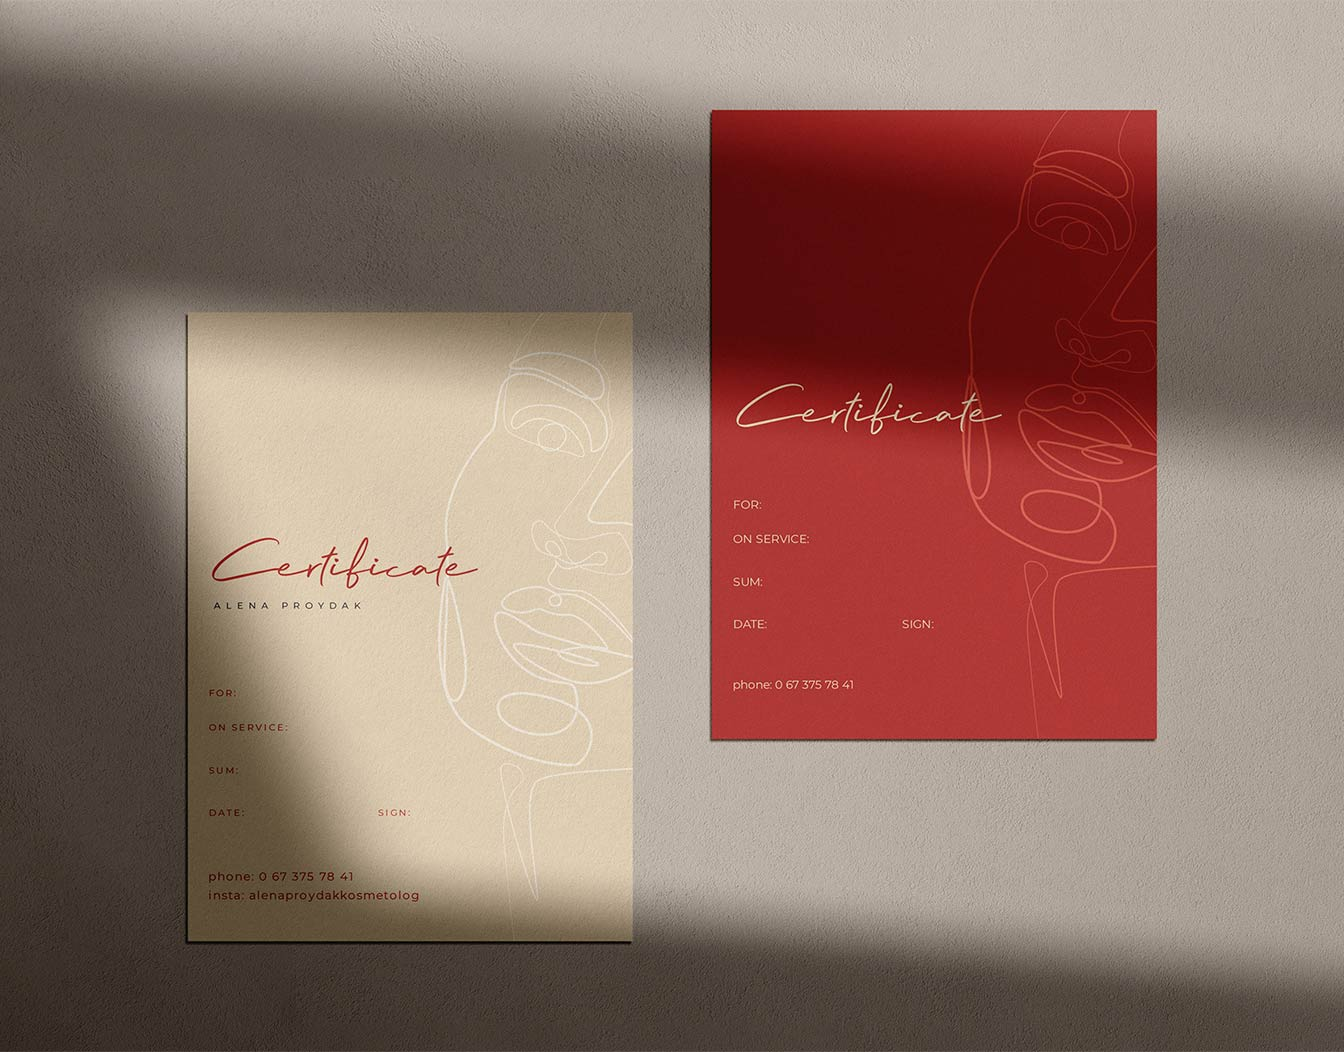 Two elegant gift vouchers in red and sand